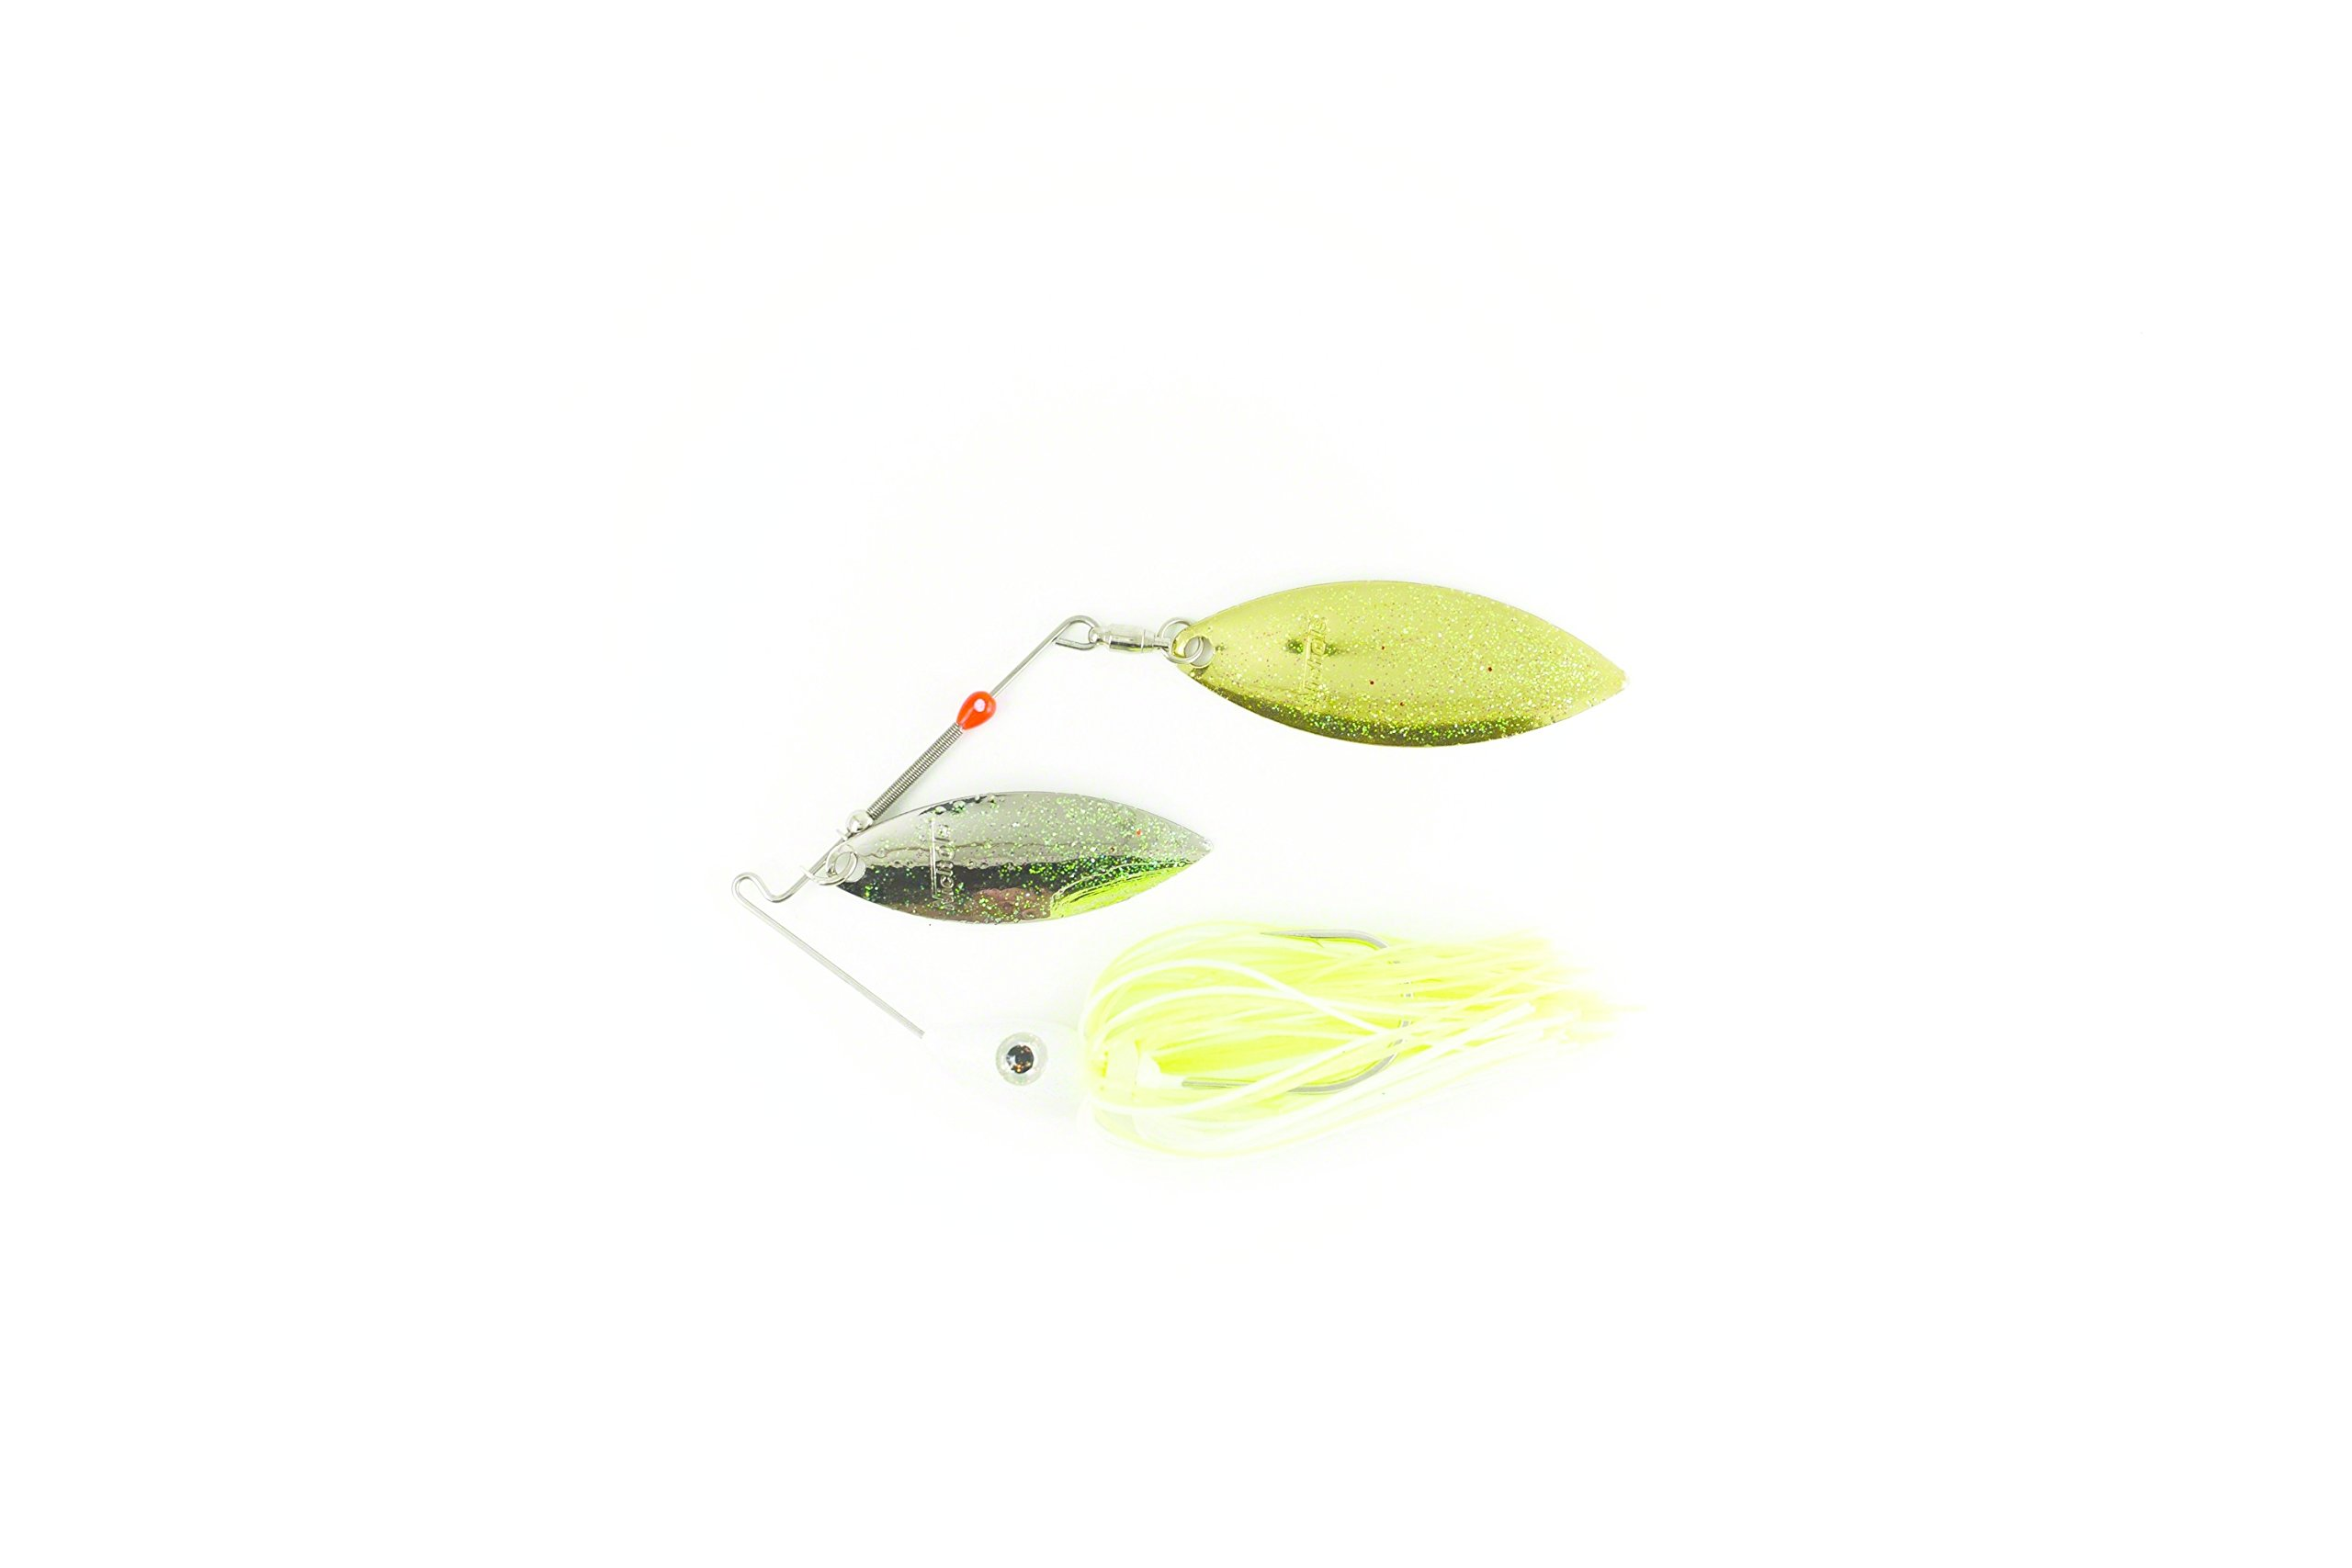 Nichols Lures Pulsator Metal Flake Double Willow Spinnerbait, White/Chartreuse/Nickel Gold, 3/8-Ounce by Nichols Lures